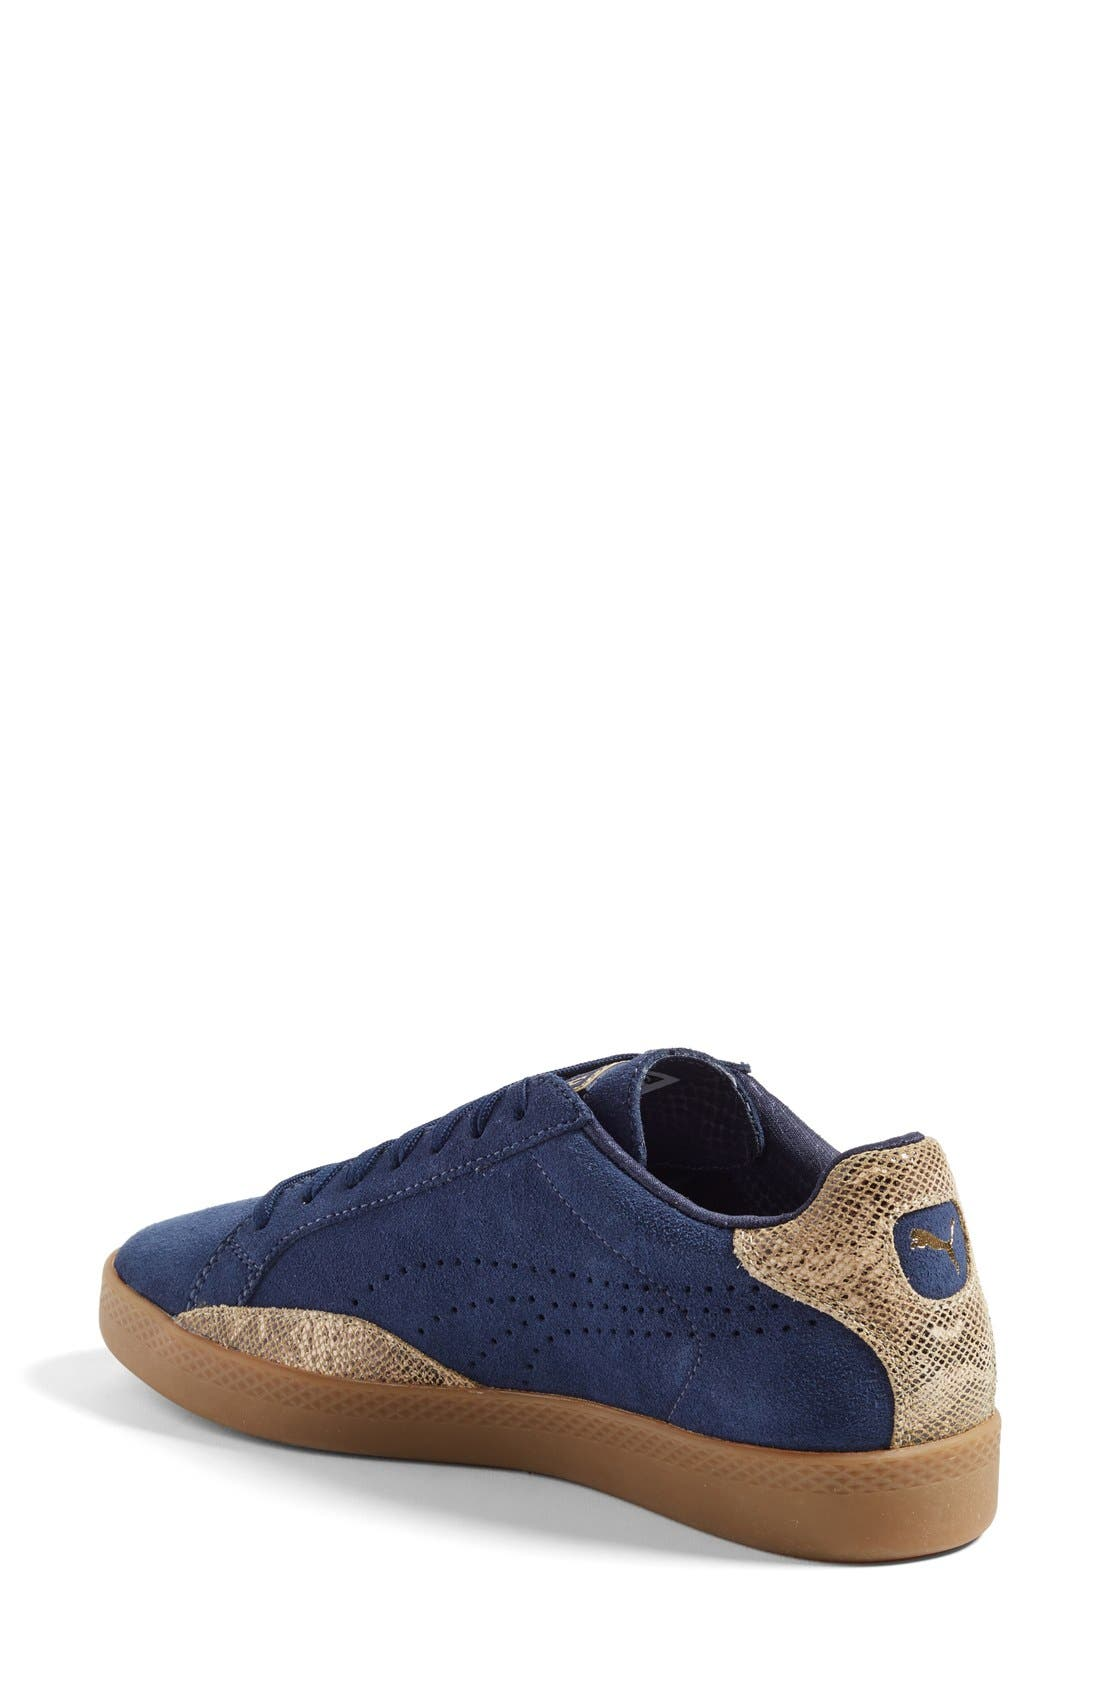 Alternate Image 2  - PUMA 'Match Lo - Basic Sport' Leather Sneaker (Women)